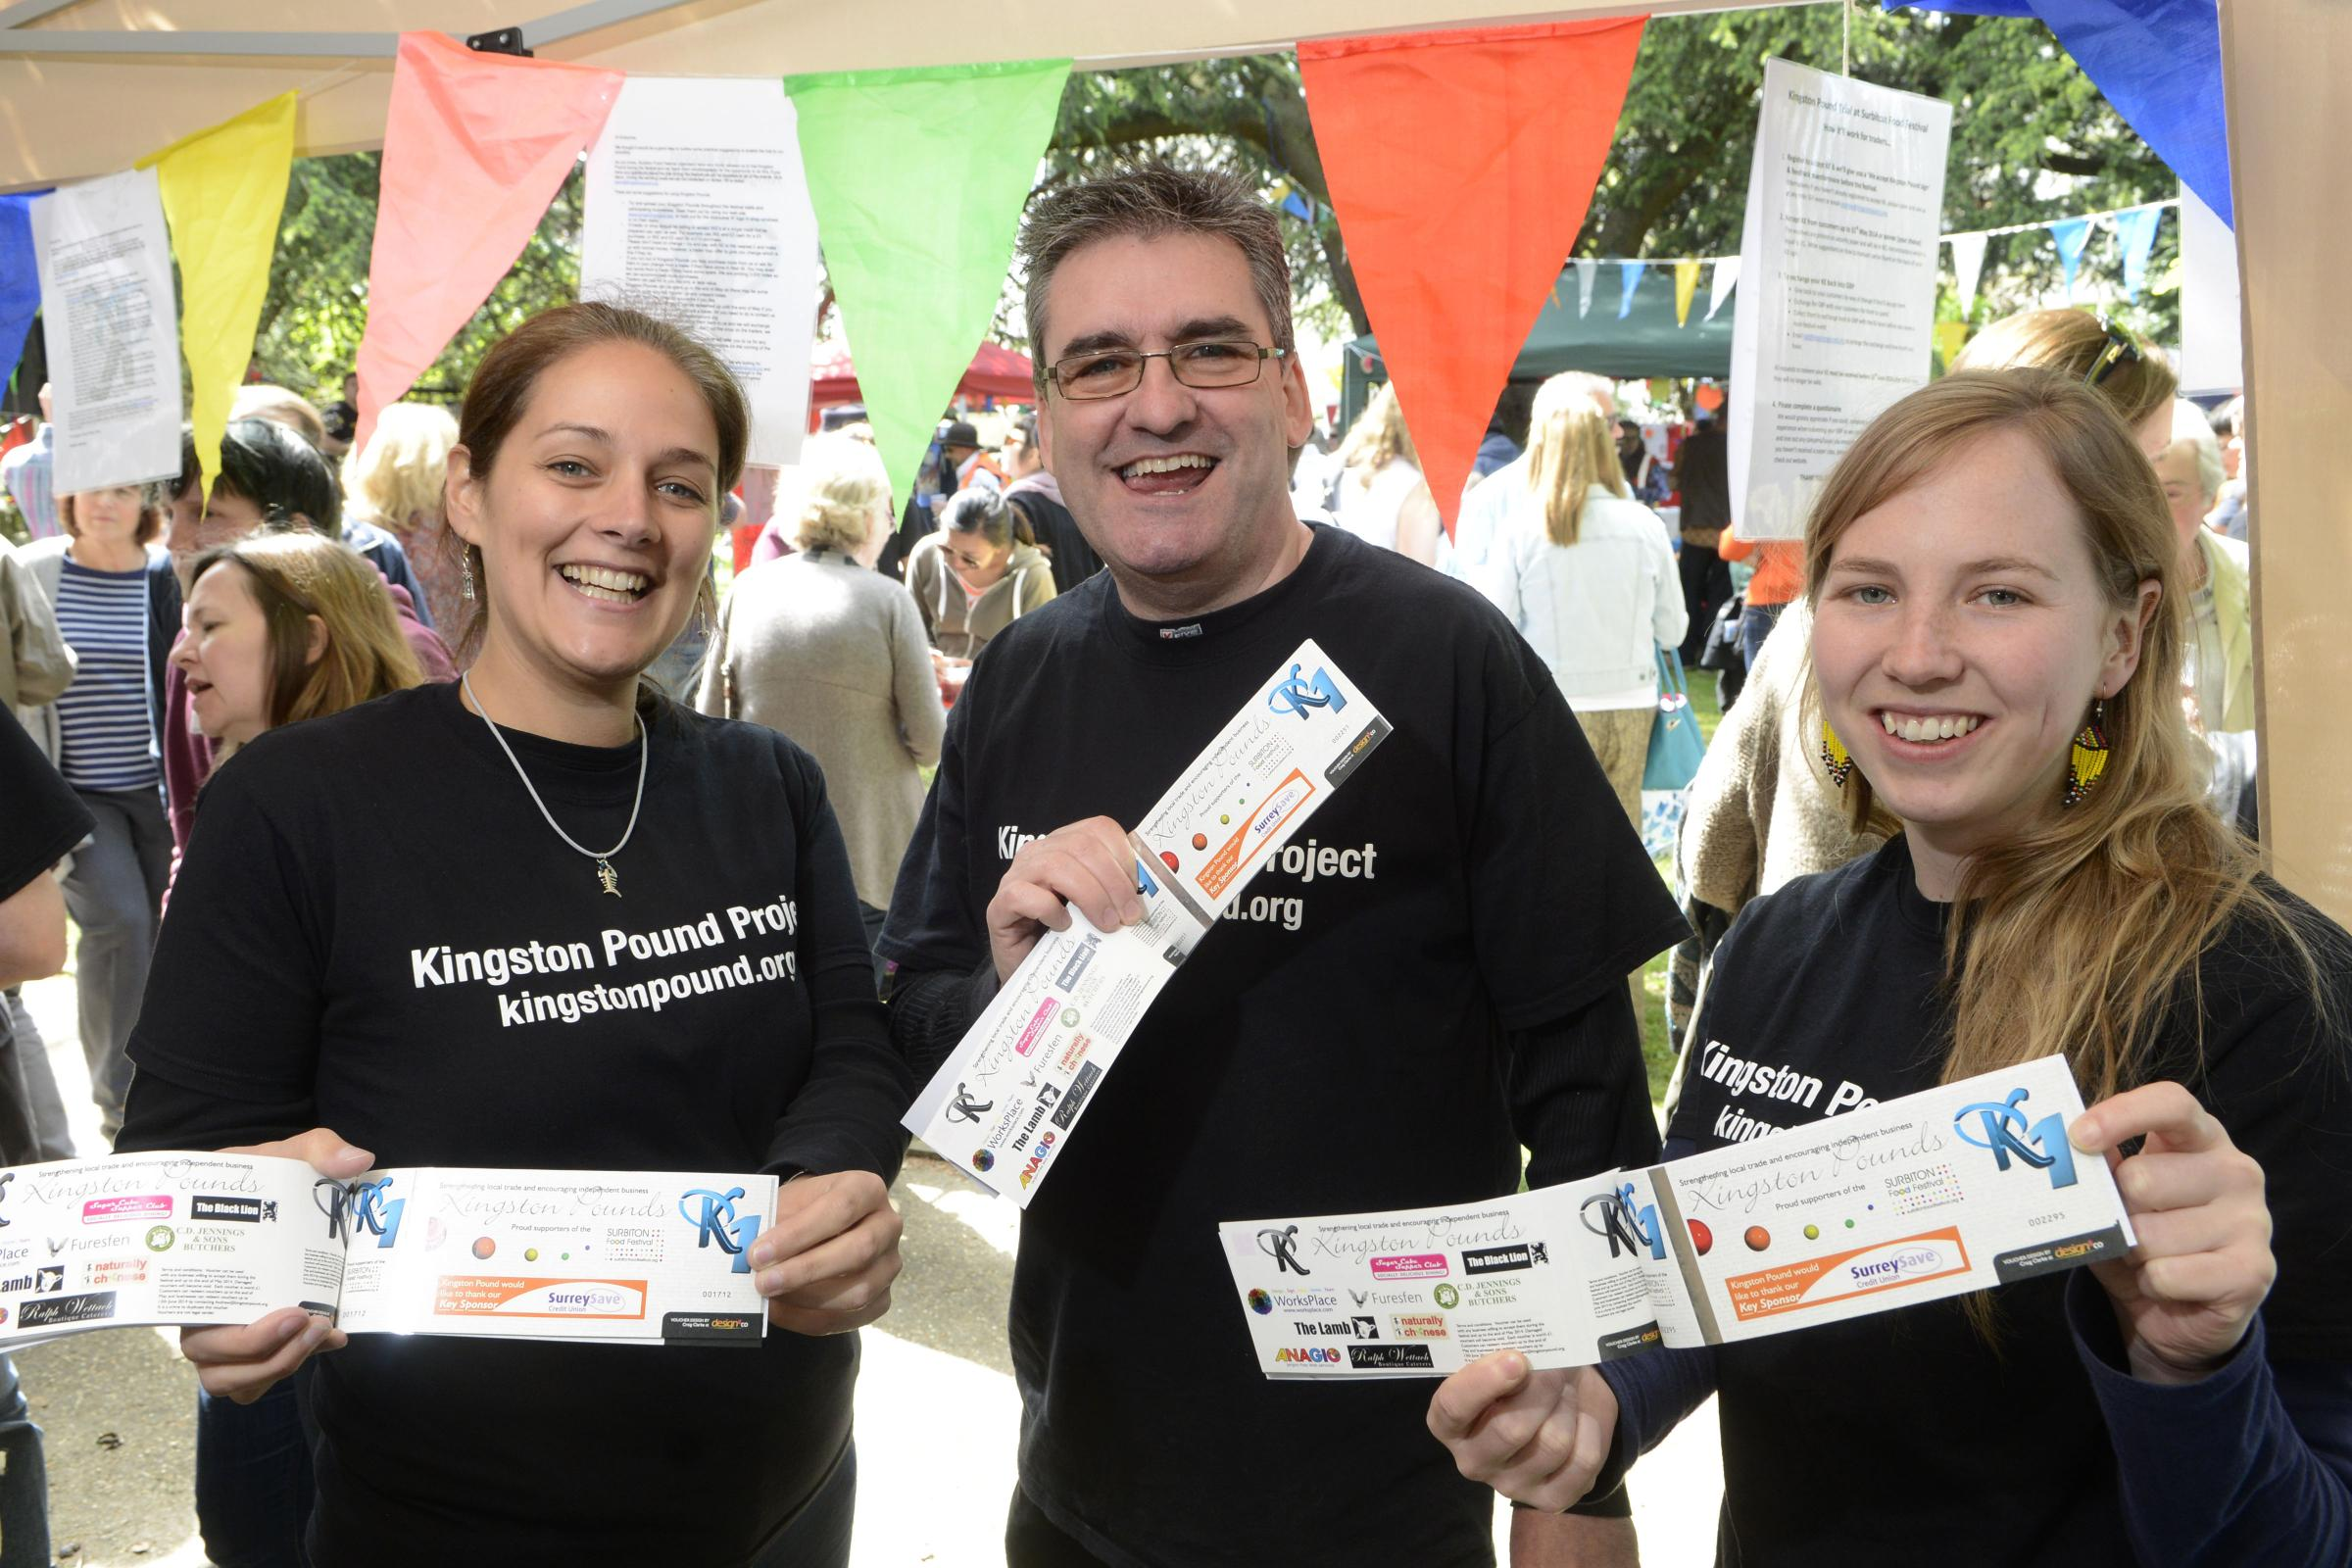 Kat Hipsey, Andrew Connolly and Saskia Baard at the new Kingston Pound stall